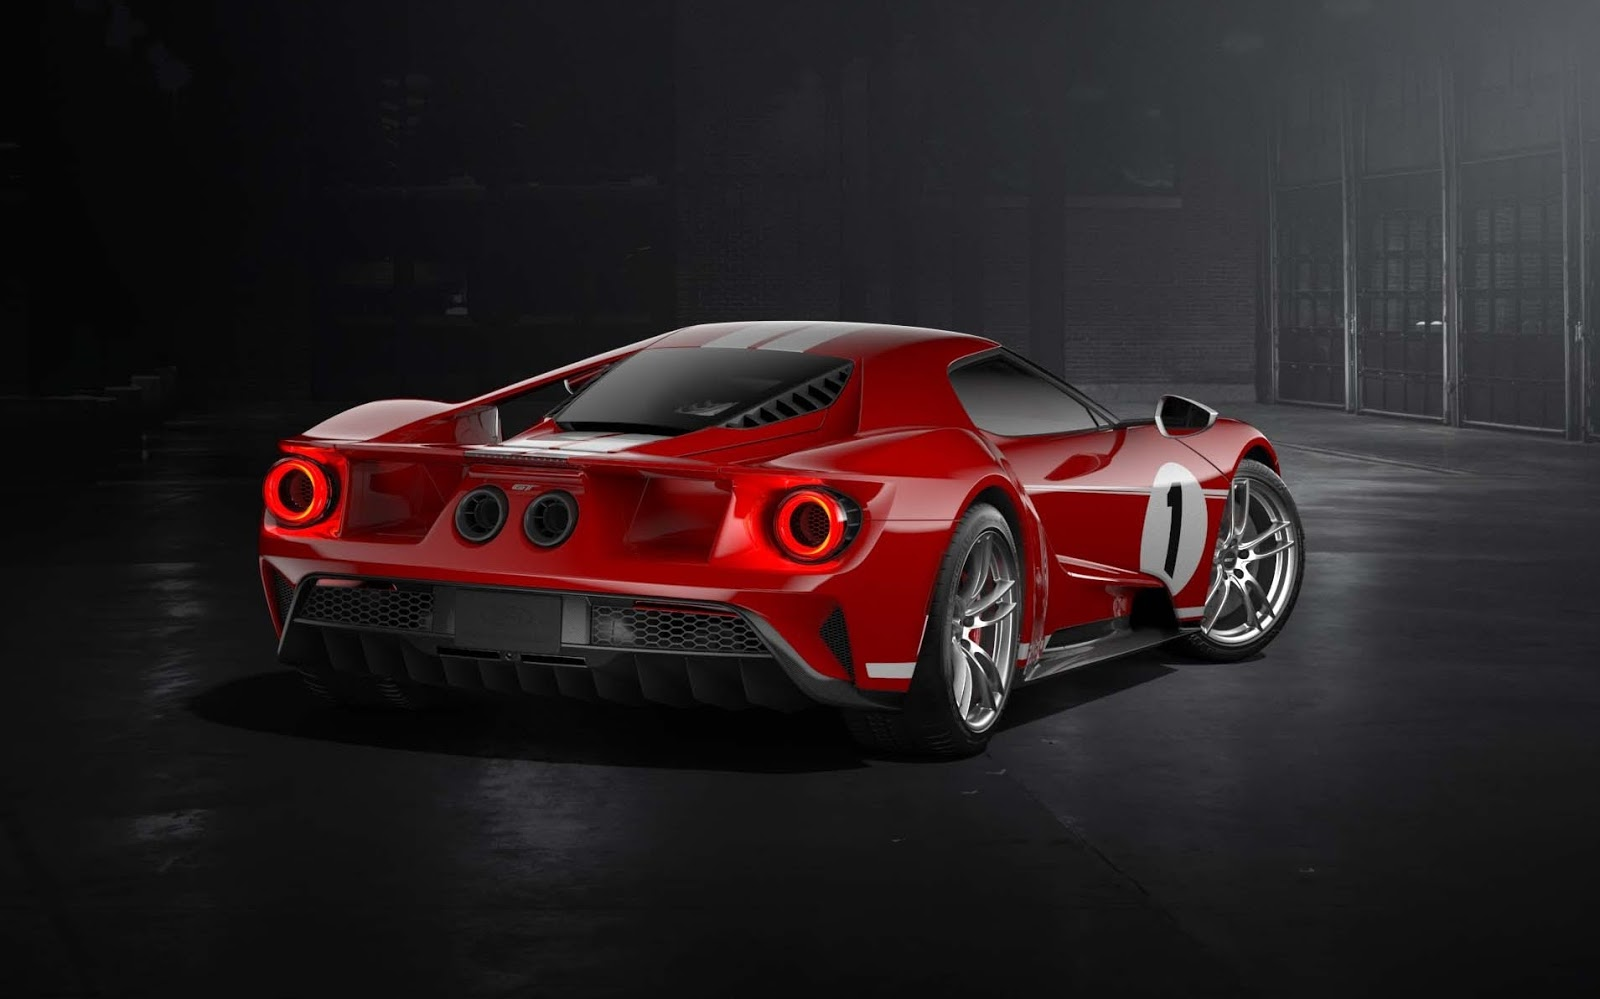 nouvelle ford gt 67 heritage edition sur startandstop. Black Bedroom Furniture Sets. Home Design Ideas